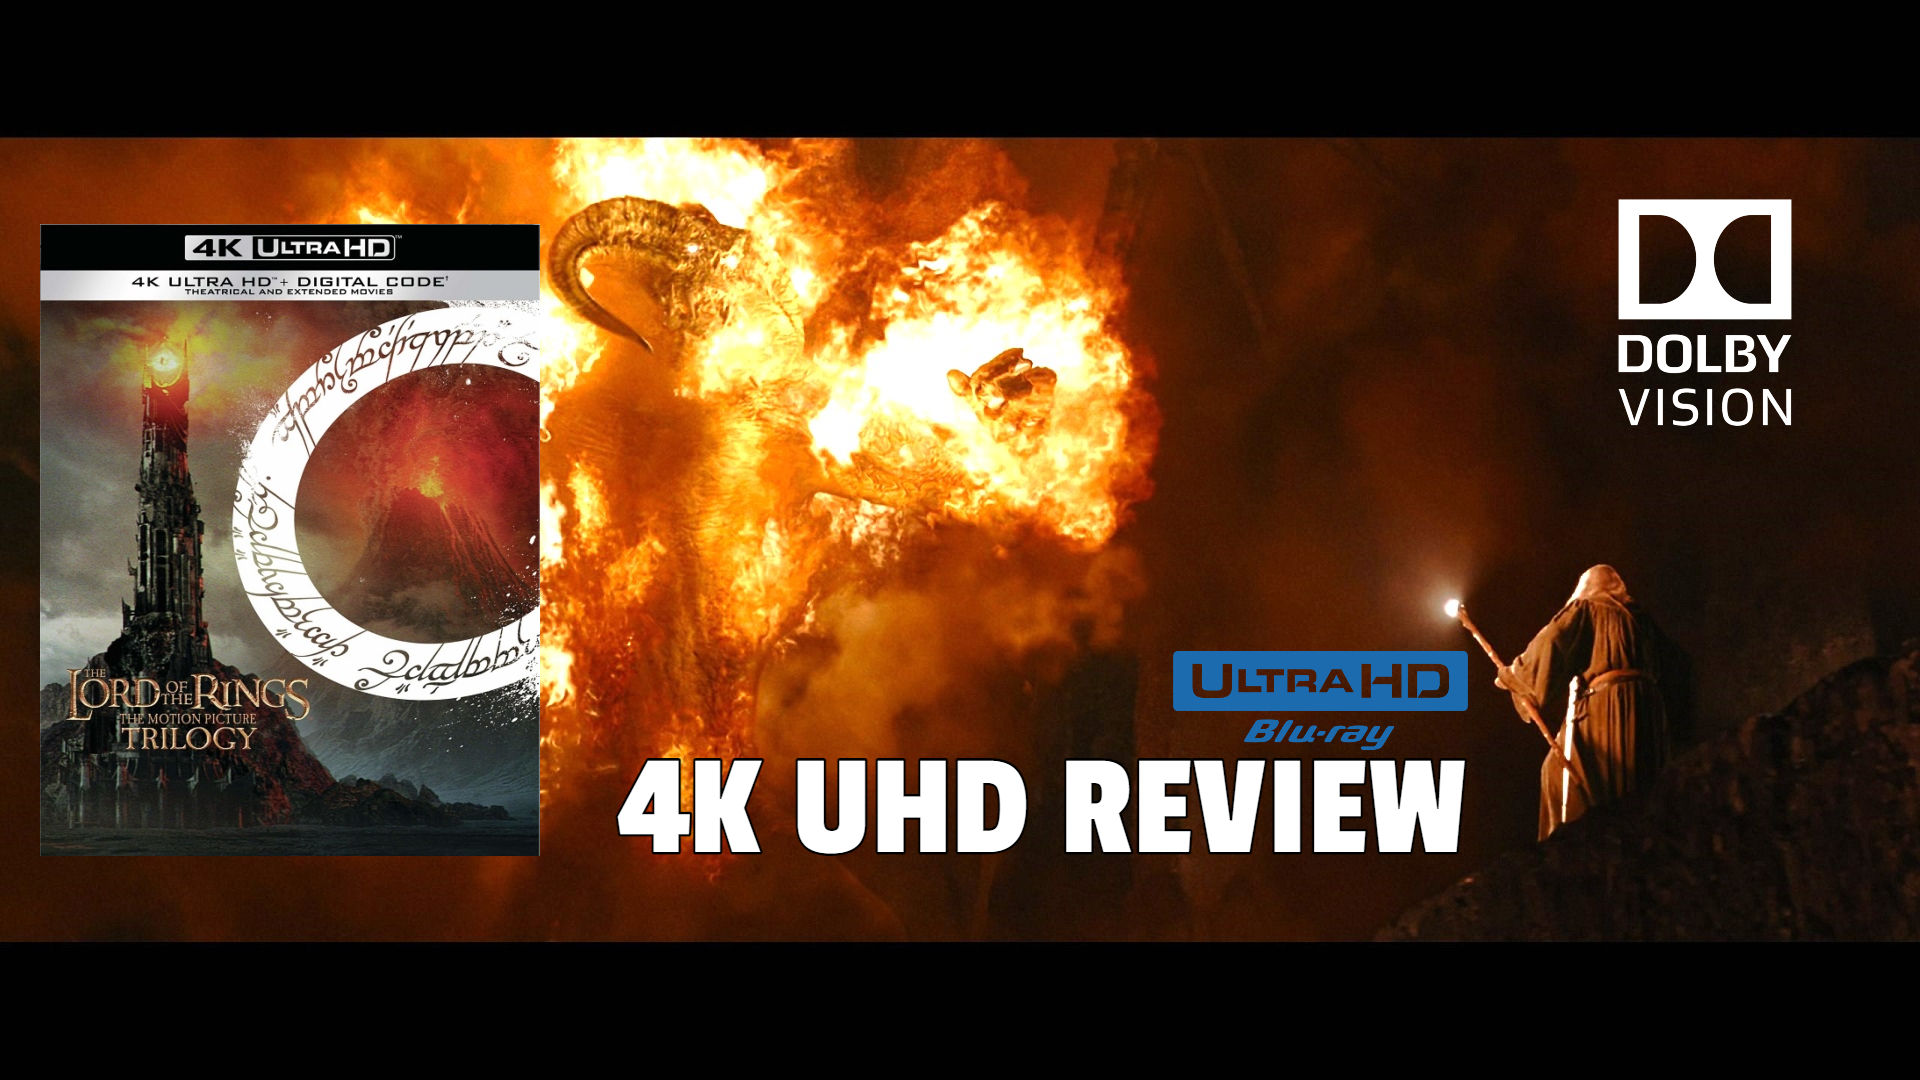 The Lord of the Rings: The Motion Picture Trilogy 4K Ultra HD Blu-ray Review: The Basics Banner Image